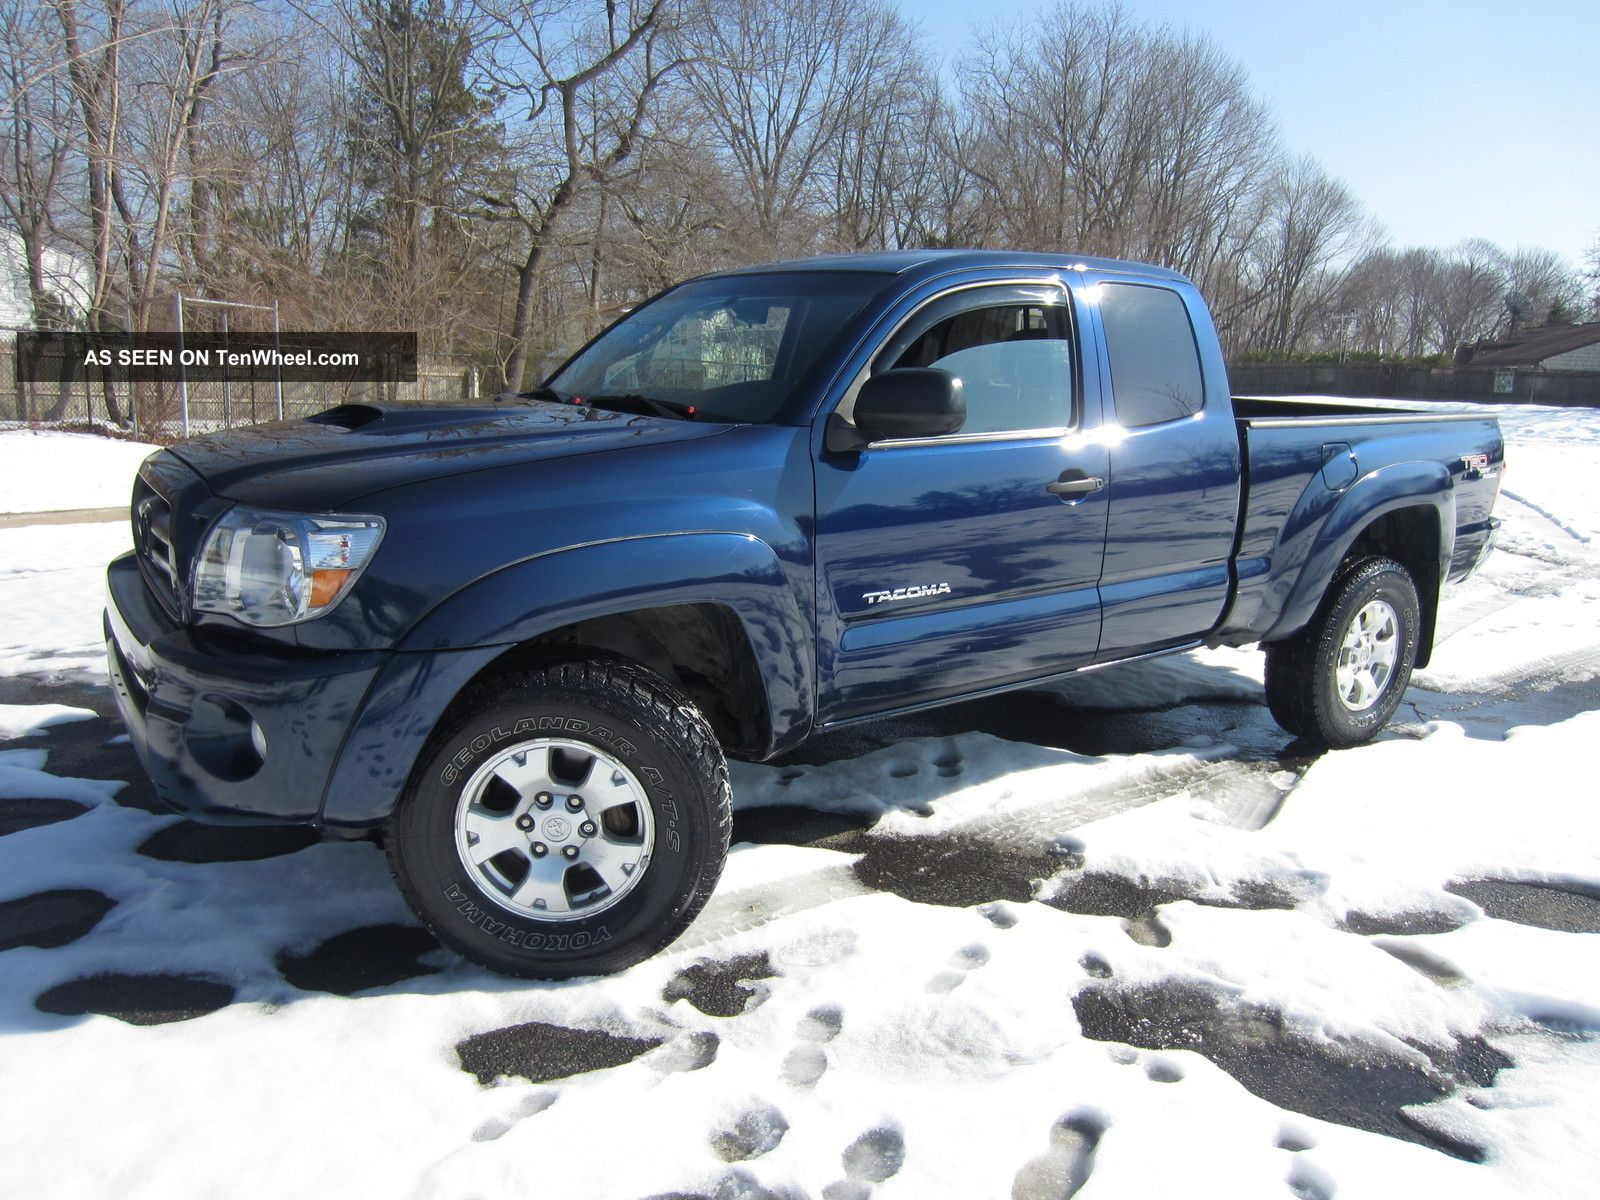 2007 Toyota Tacoma Trd, Extended Cab, 6speed